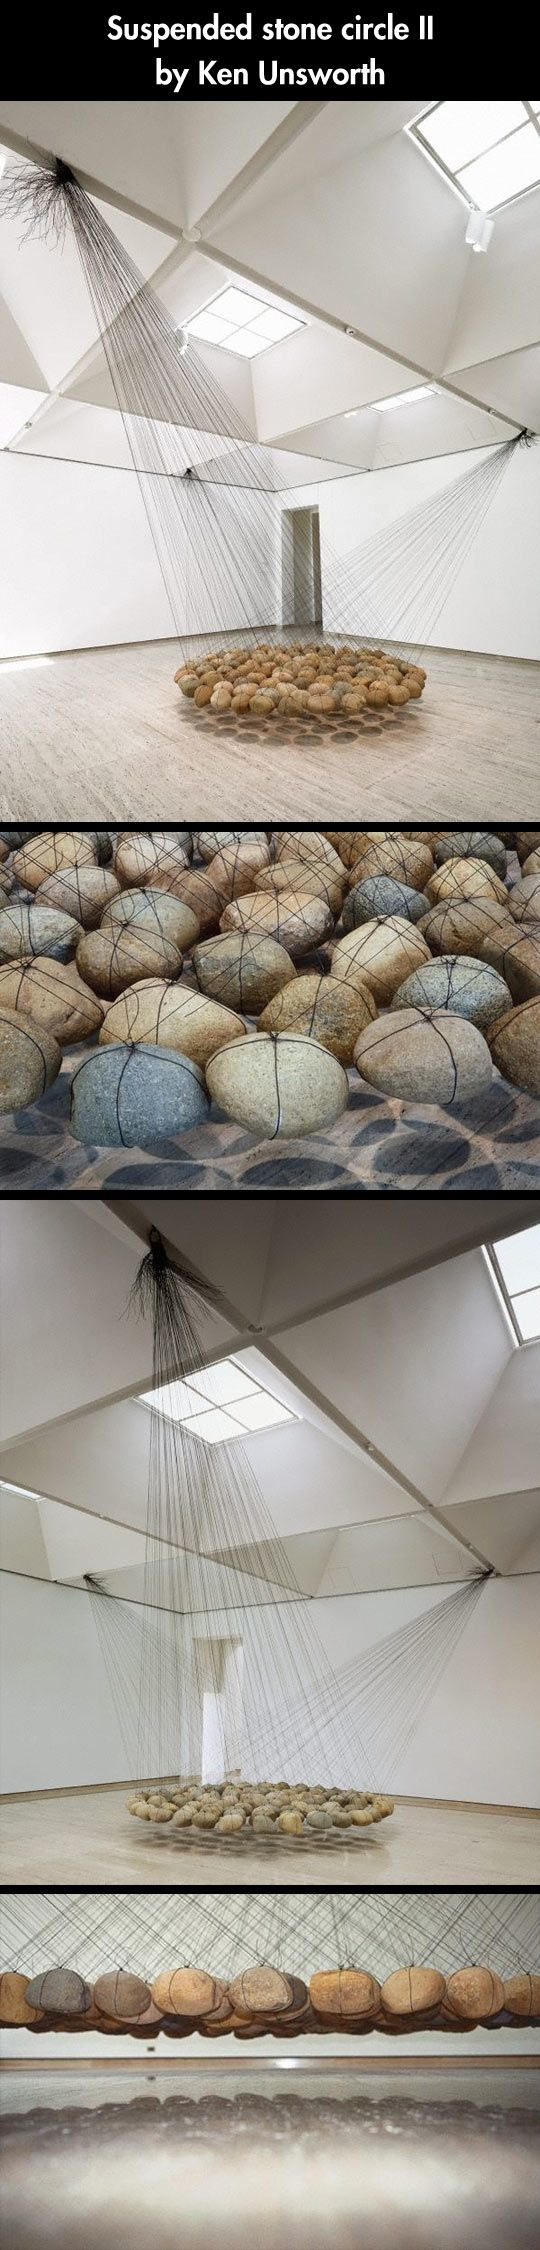 """One of my favourite pieces. """"Suspended stone circle II"""", by Ken Unsworth. 130 round river stones, each weighing around 20 kilos and suspended by tensed-up wires. I had the luck of seeing this piece at the Art Gallery of New South Wales."""